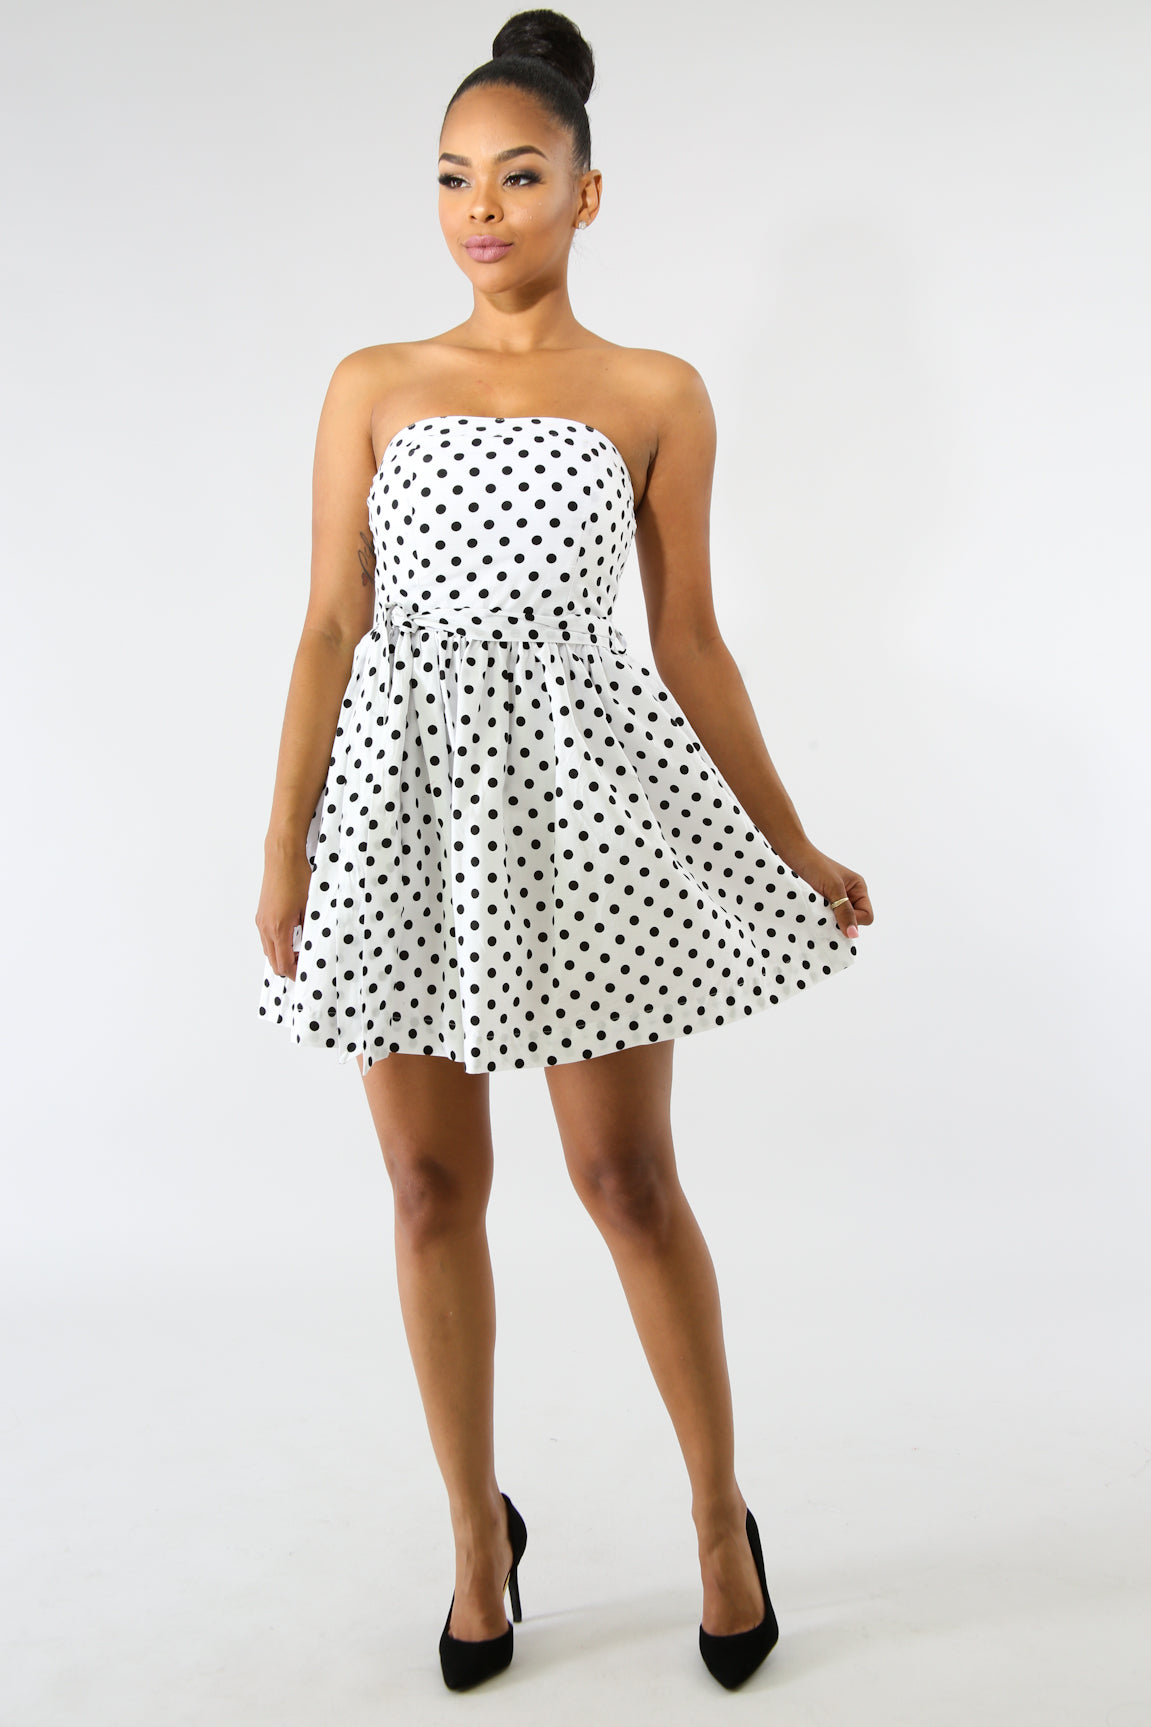 Polka Dot Dolly Dress